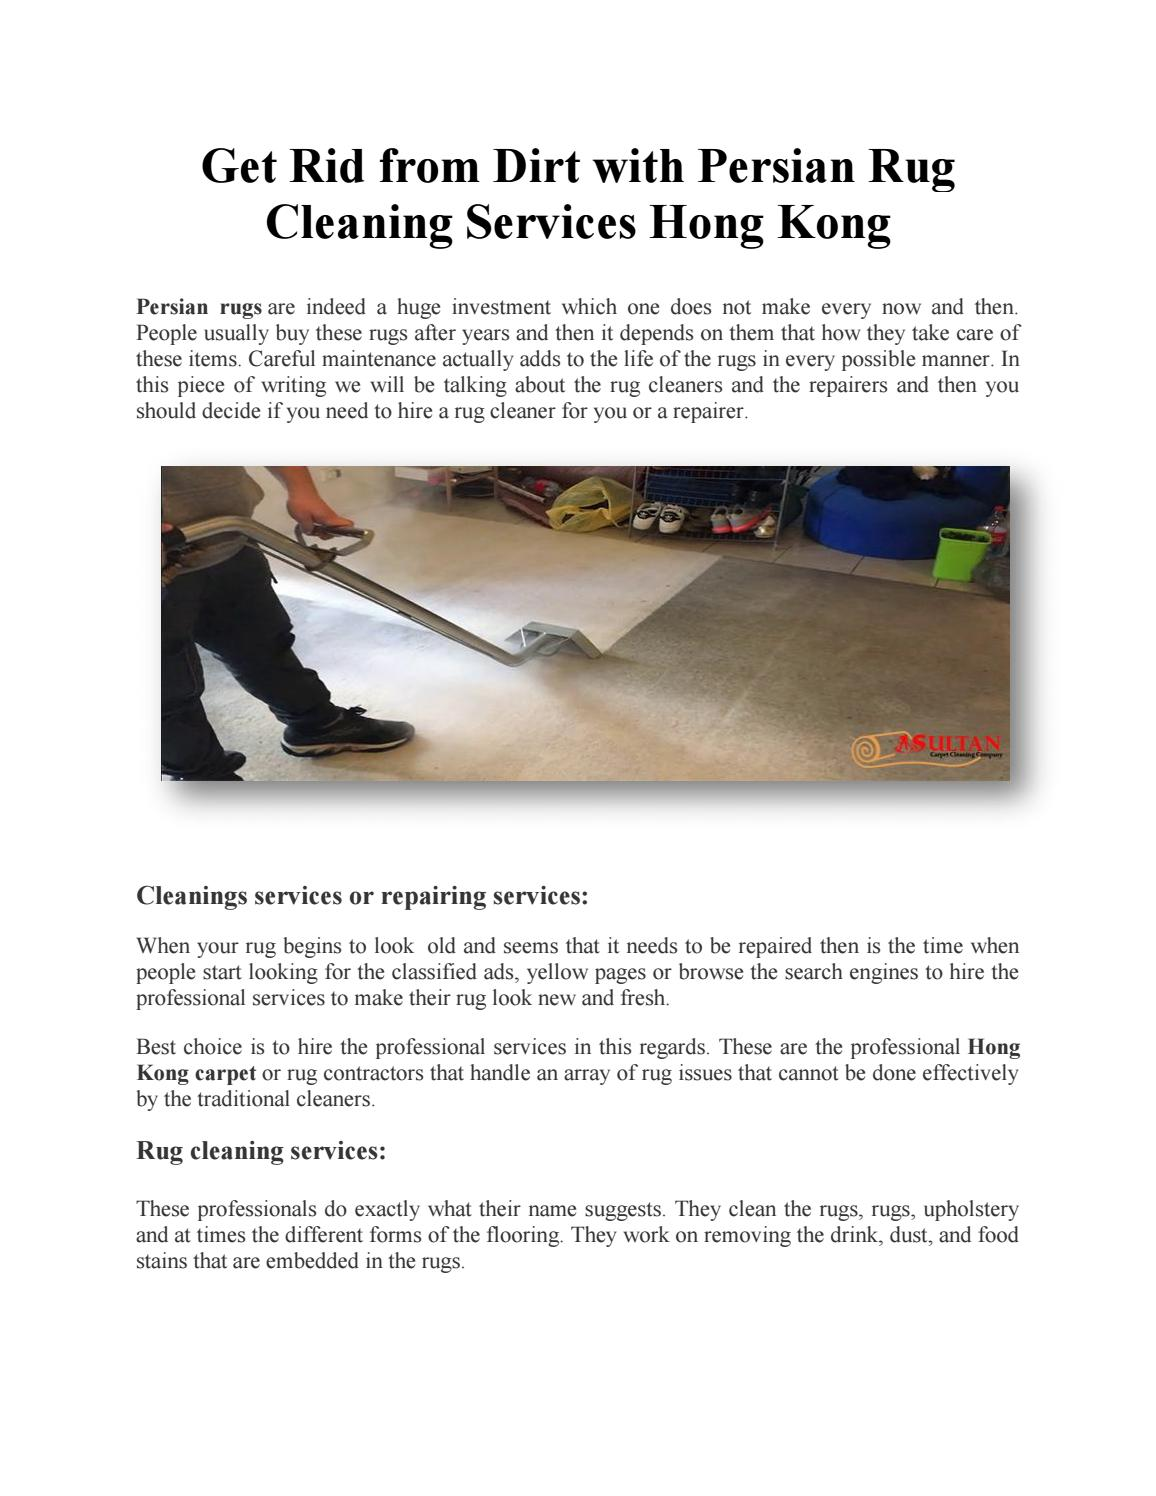 Get Rid from Dirt with Persian Rug Cleaning Services Hong Kong by Sultan Carpet Cleaning - issuu